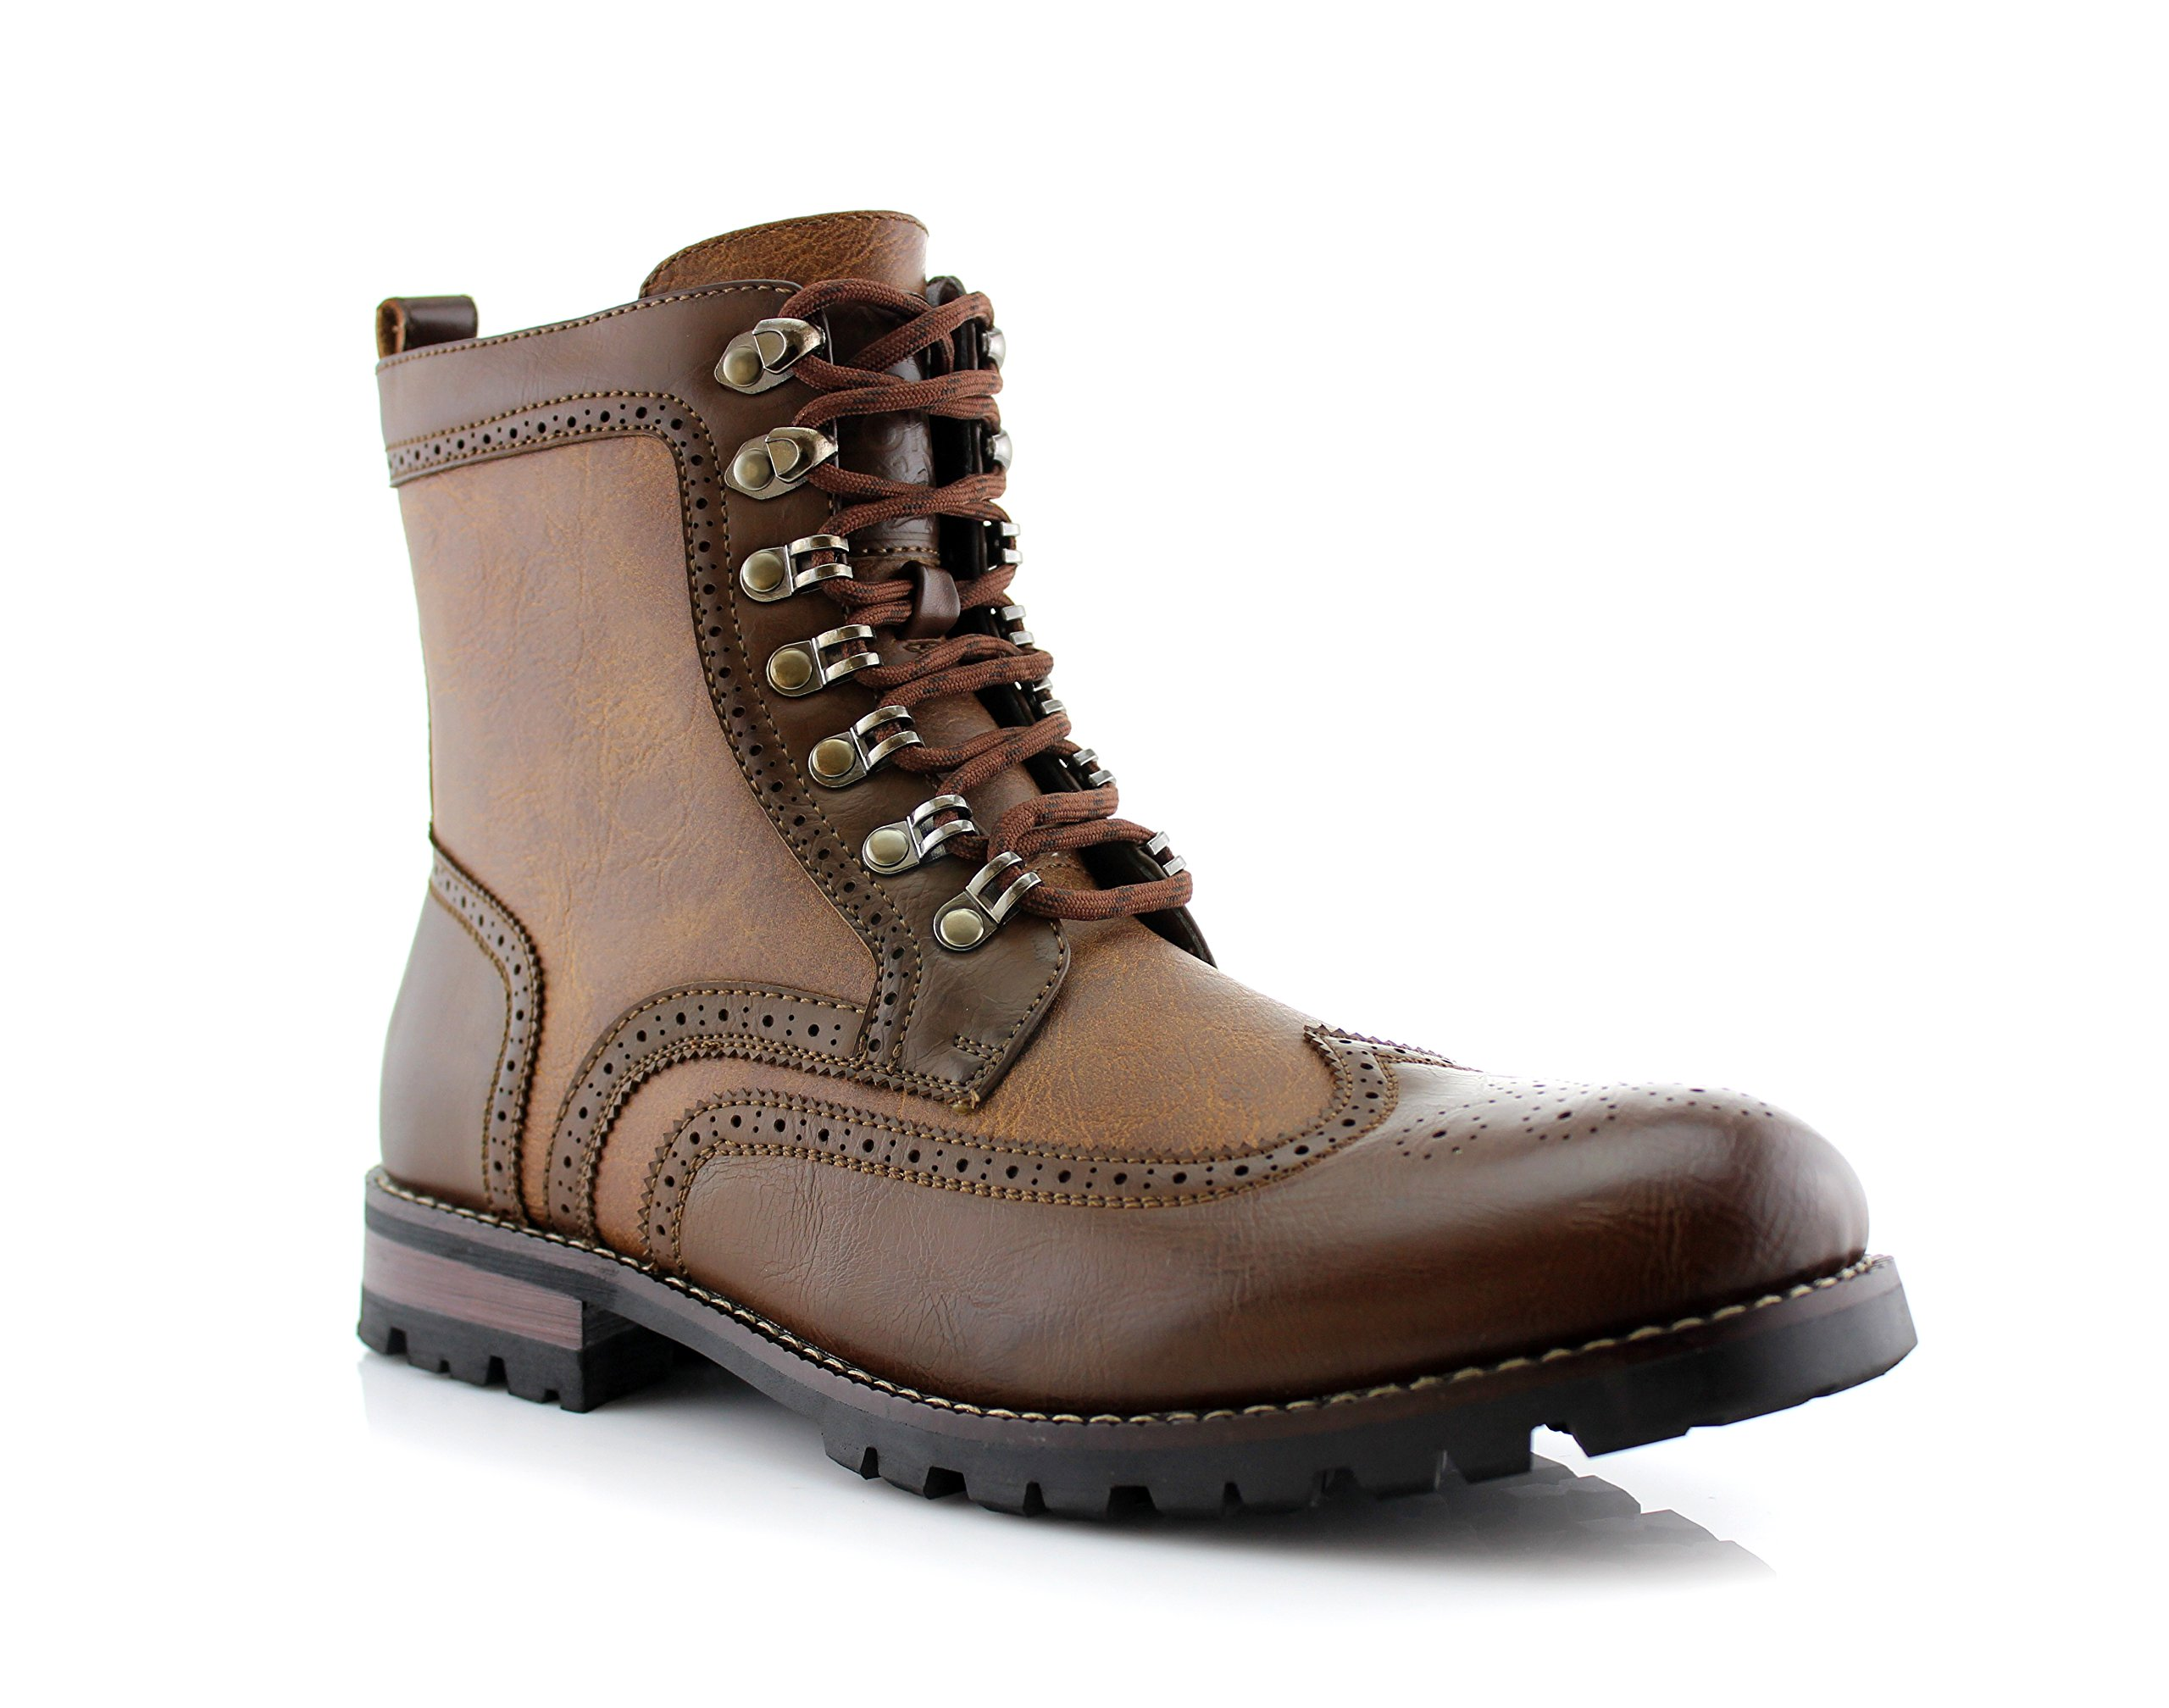 Polar Fox Cohen MPX808586 Mens Casual Wing Tip Perforated Military Combat Dress Boots - Brown, Size 8